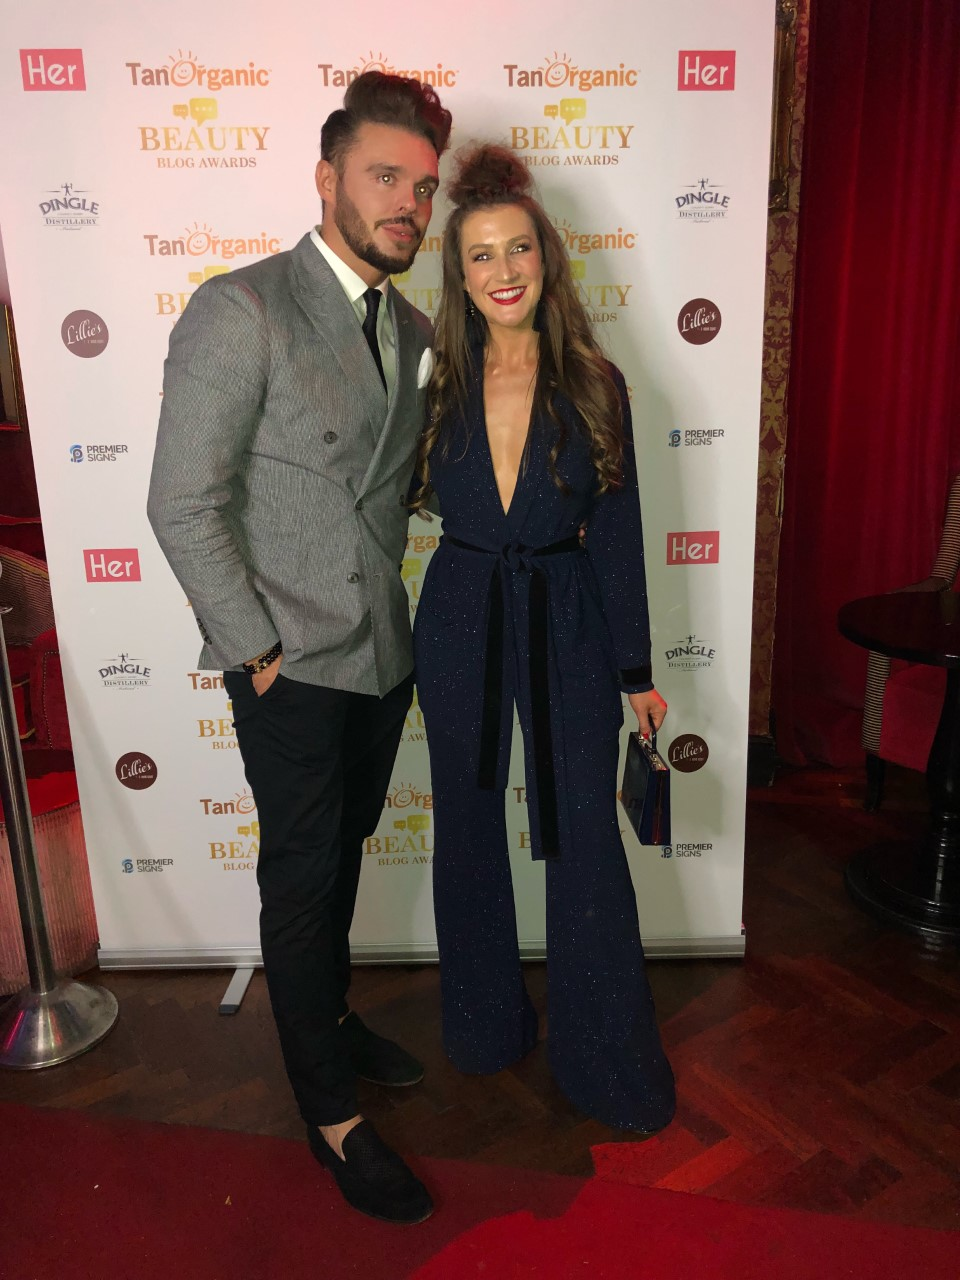 With Rebecca Rose Quigley at The Beauty Blog Awards